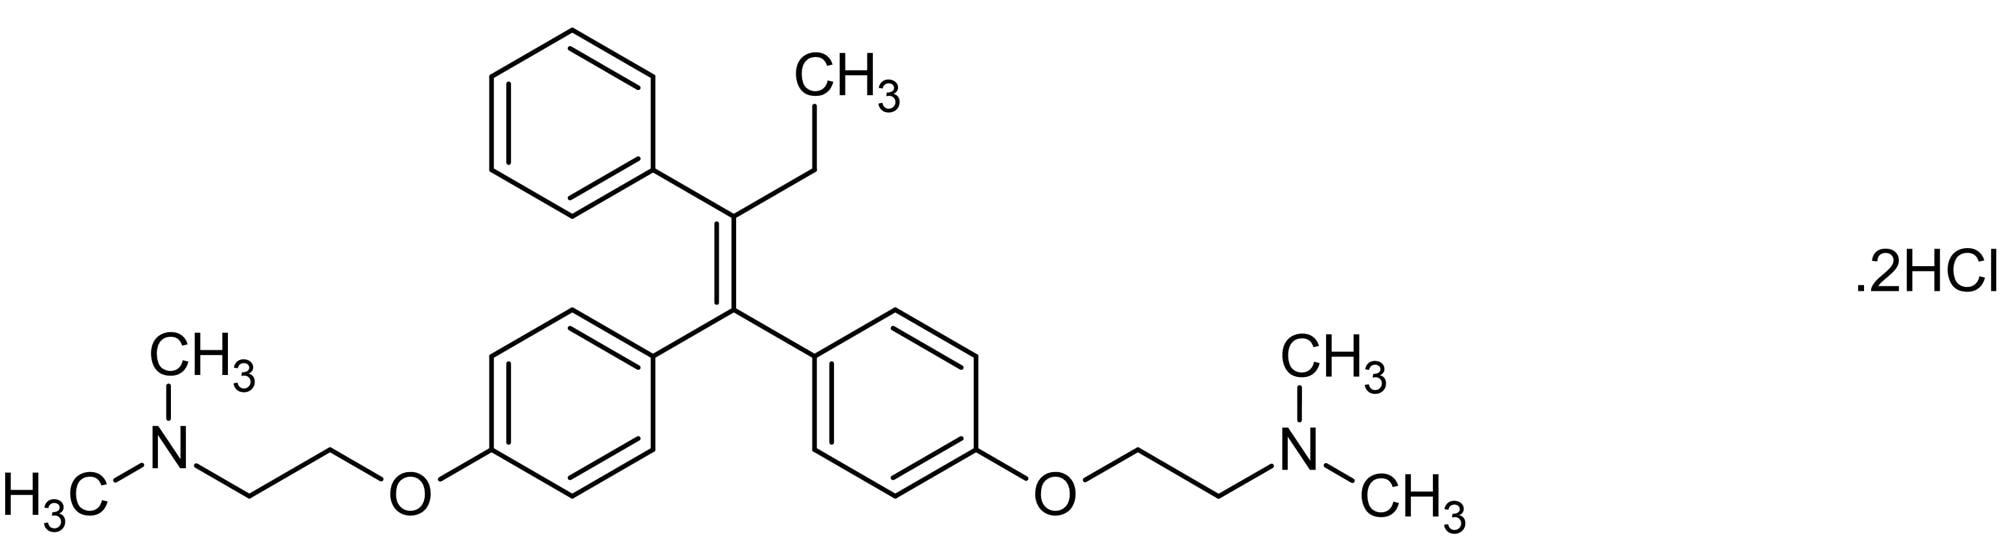 Chemical Structure - Ridaifen dihydrochloride, apoptosis inducer (ab142735)